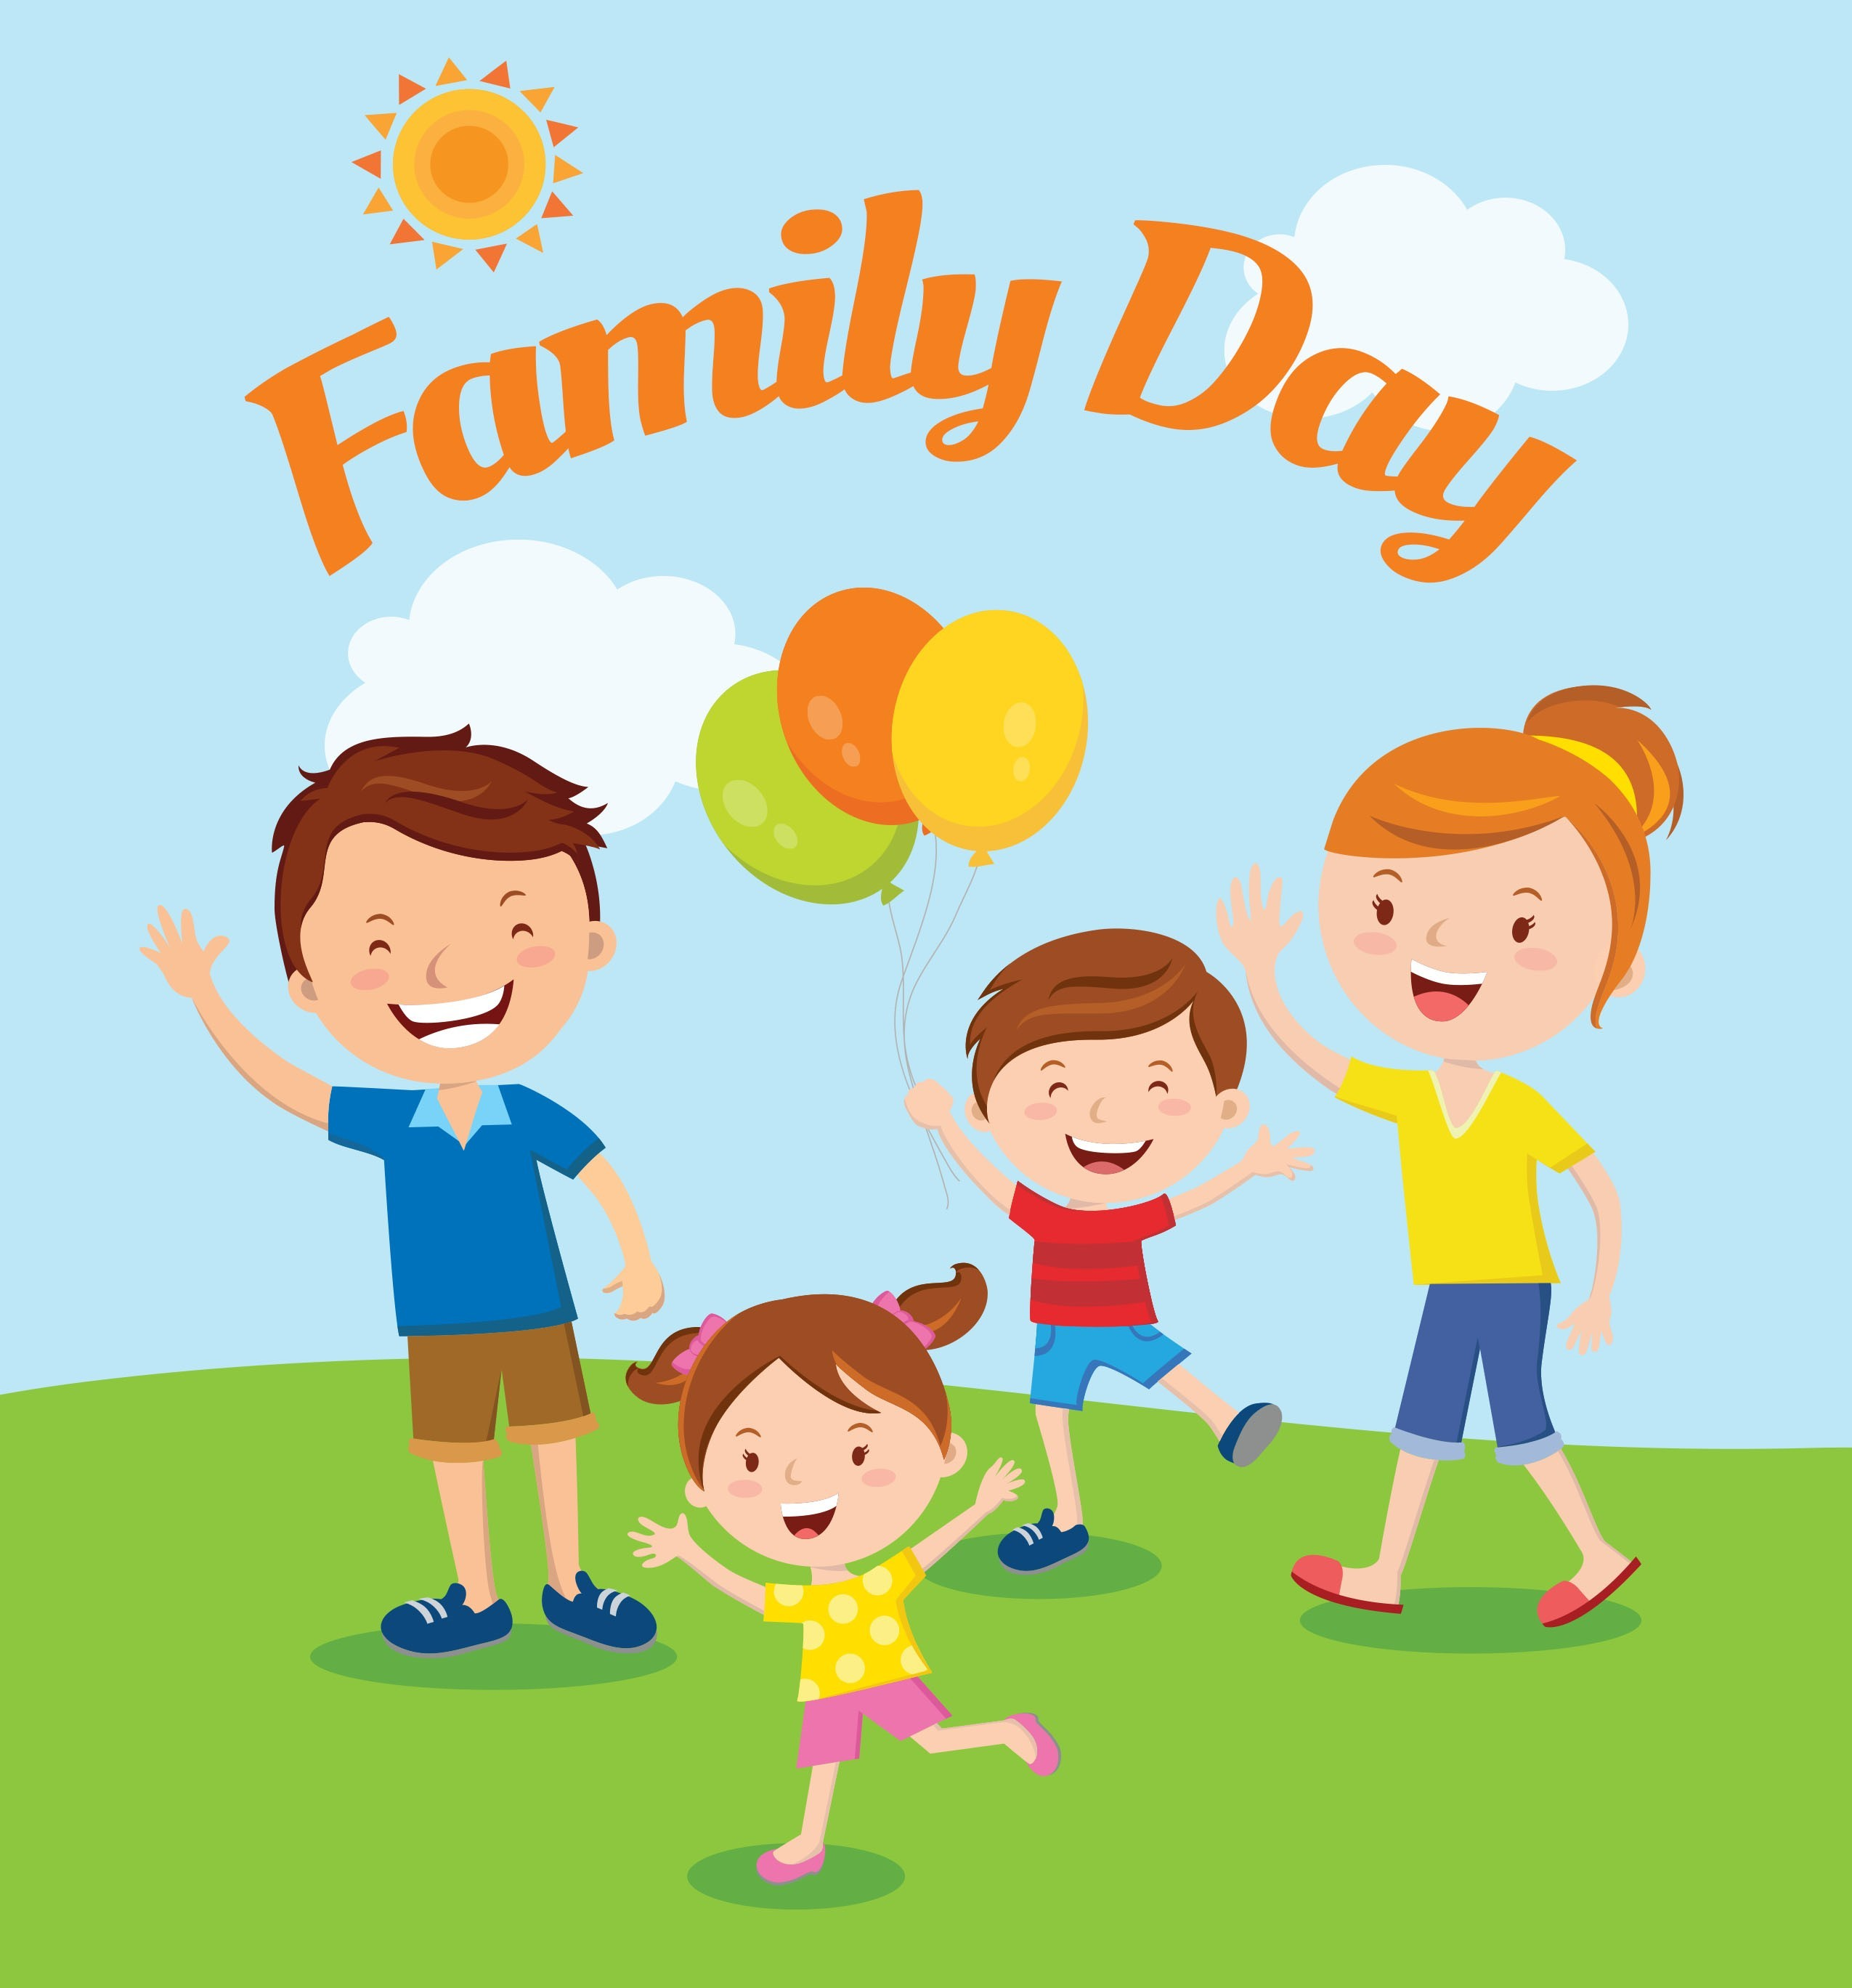 Family Day 2017 Clipart.